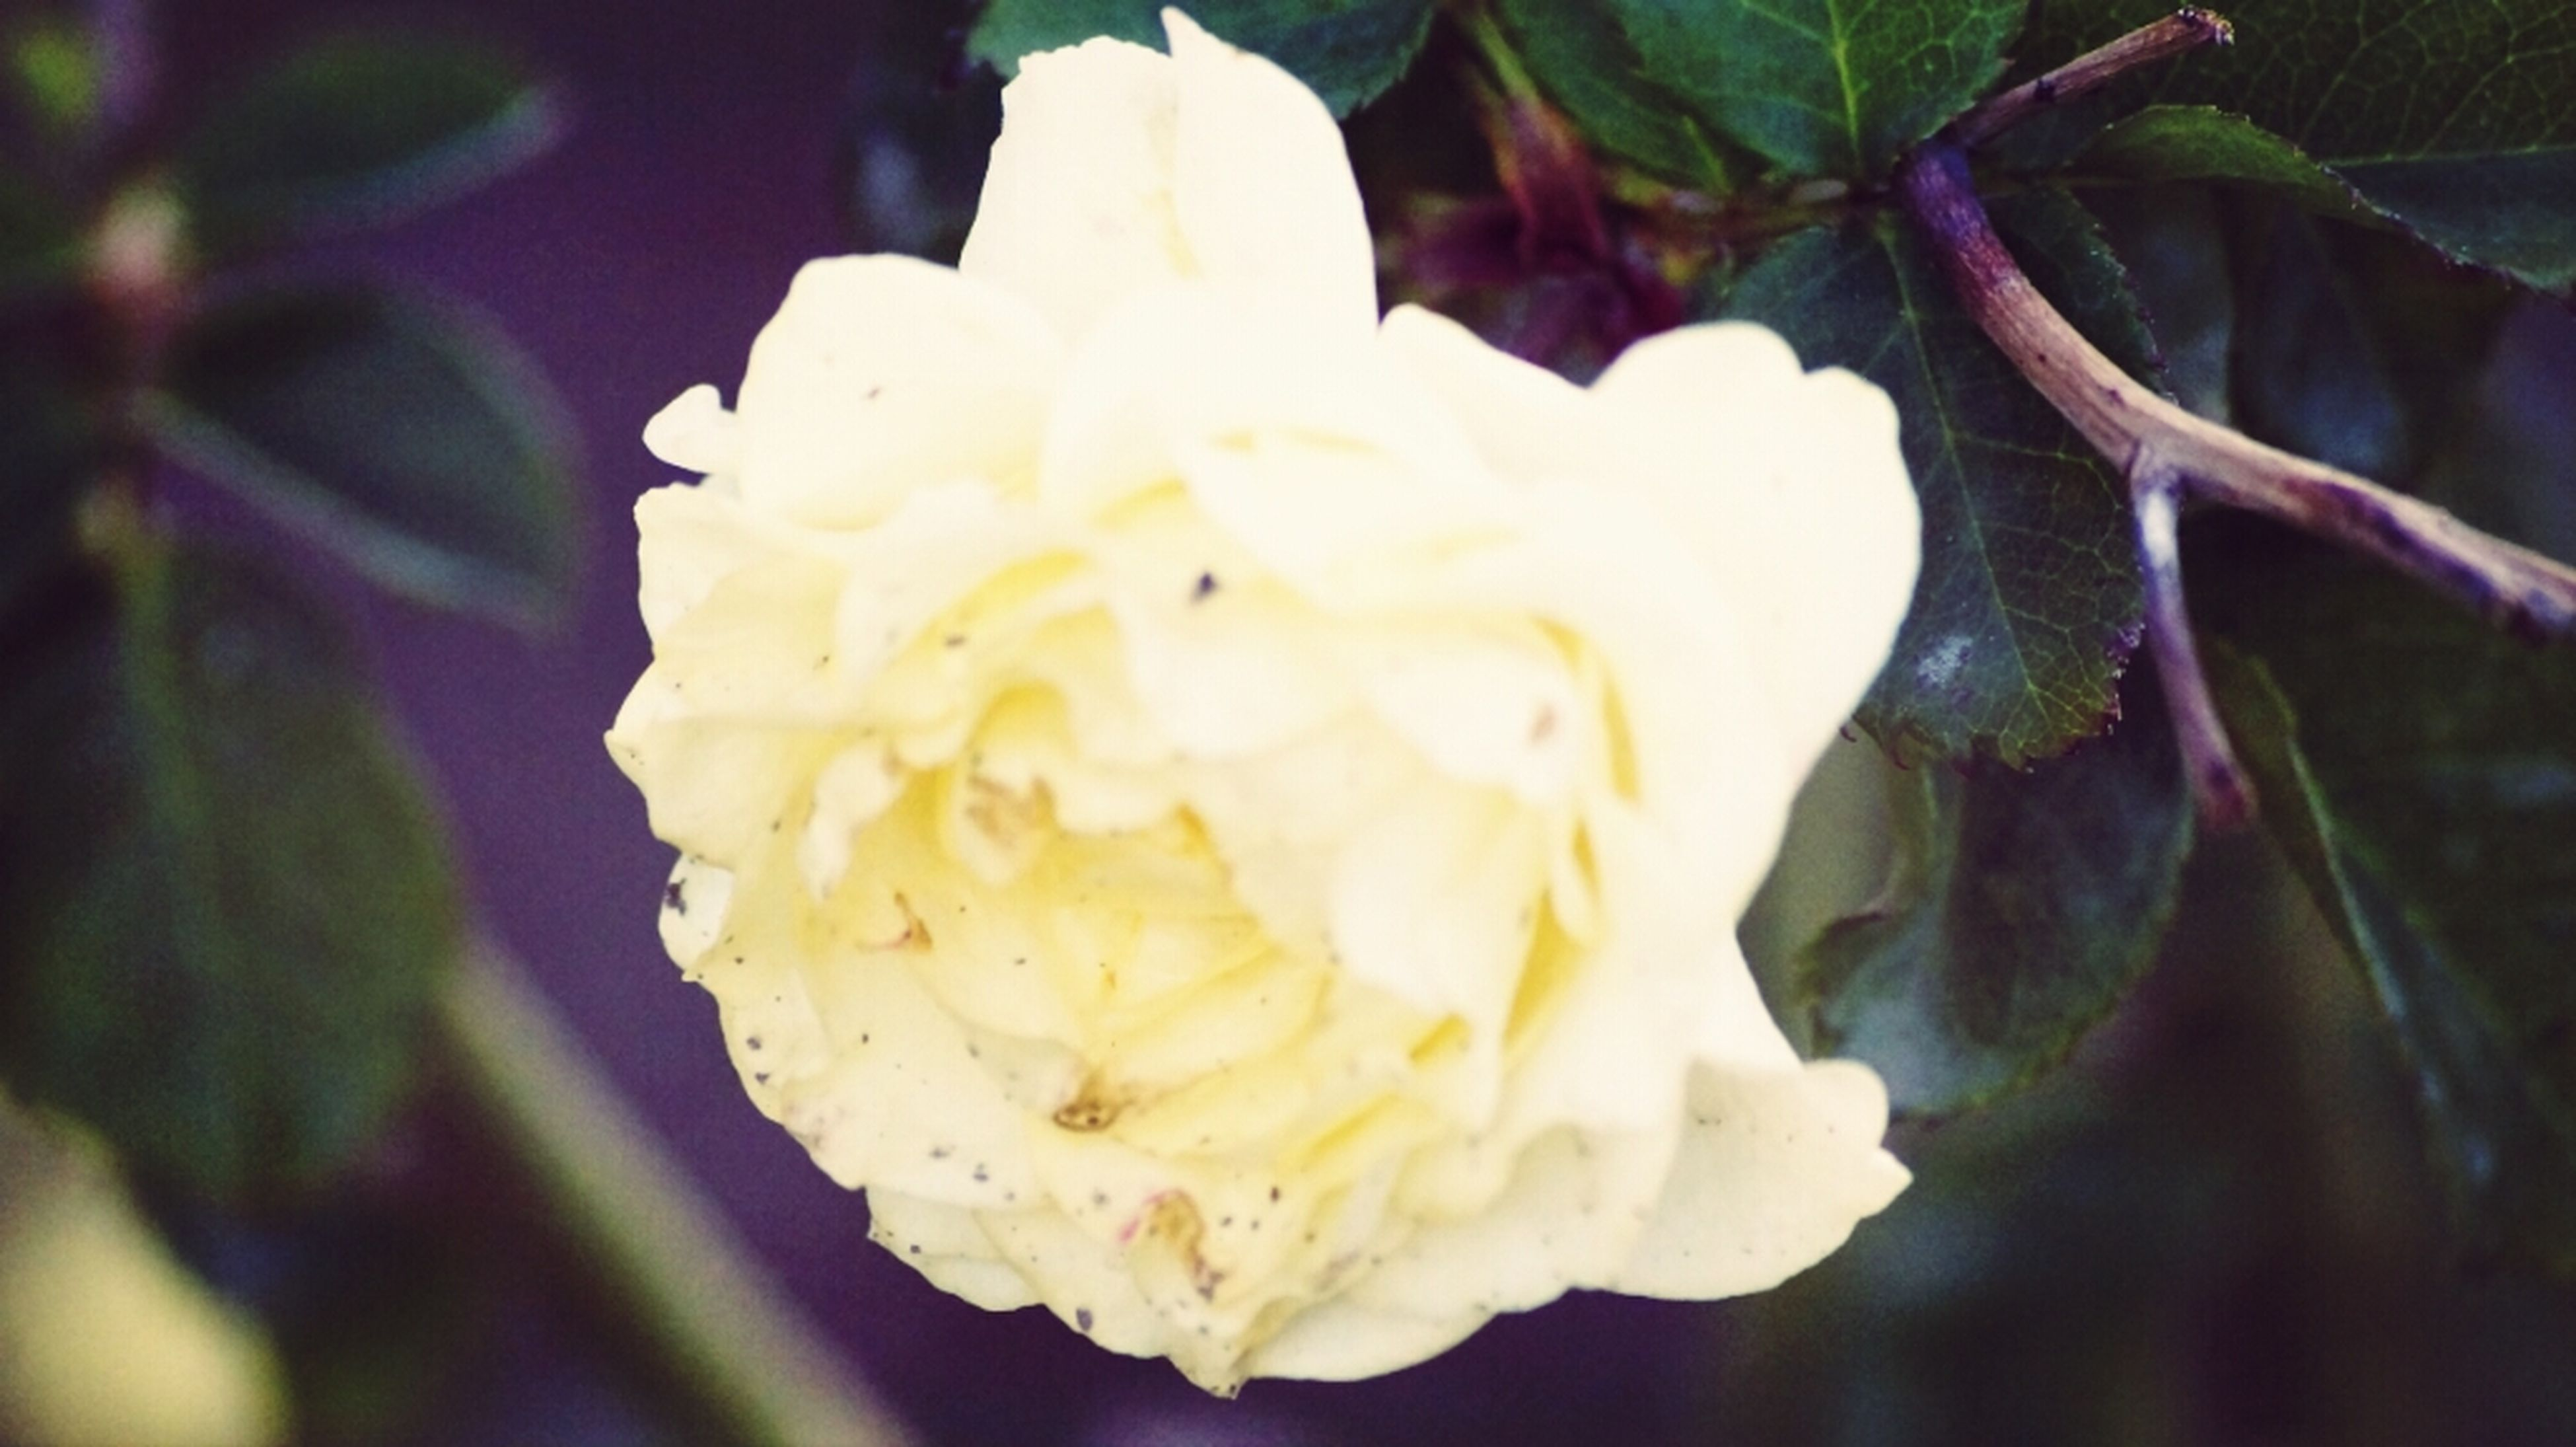 freshness, flower, petal, close-up, flower head, fragility, focus on foreground, single flower, beauty in nature, growth, white color, nature, rose - flower, blooming, yellow, selective focus, in bloom, no people, blossom, outdoors